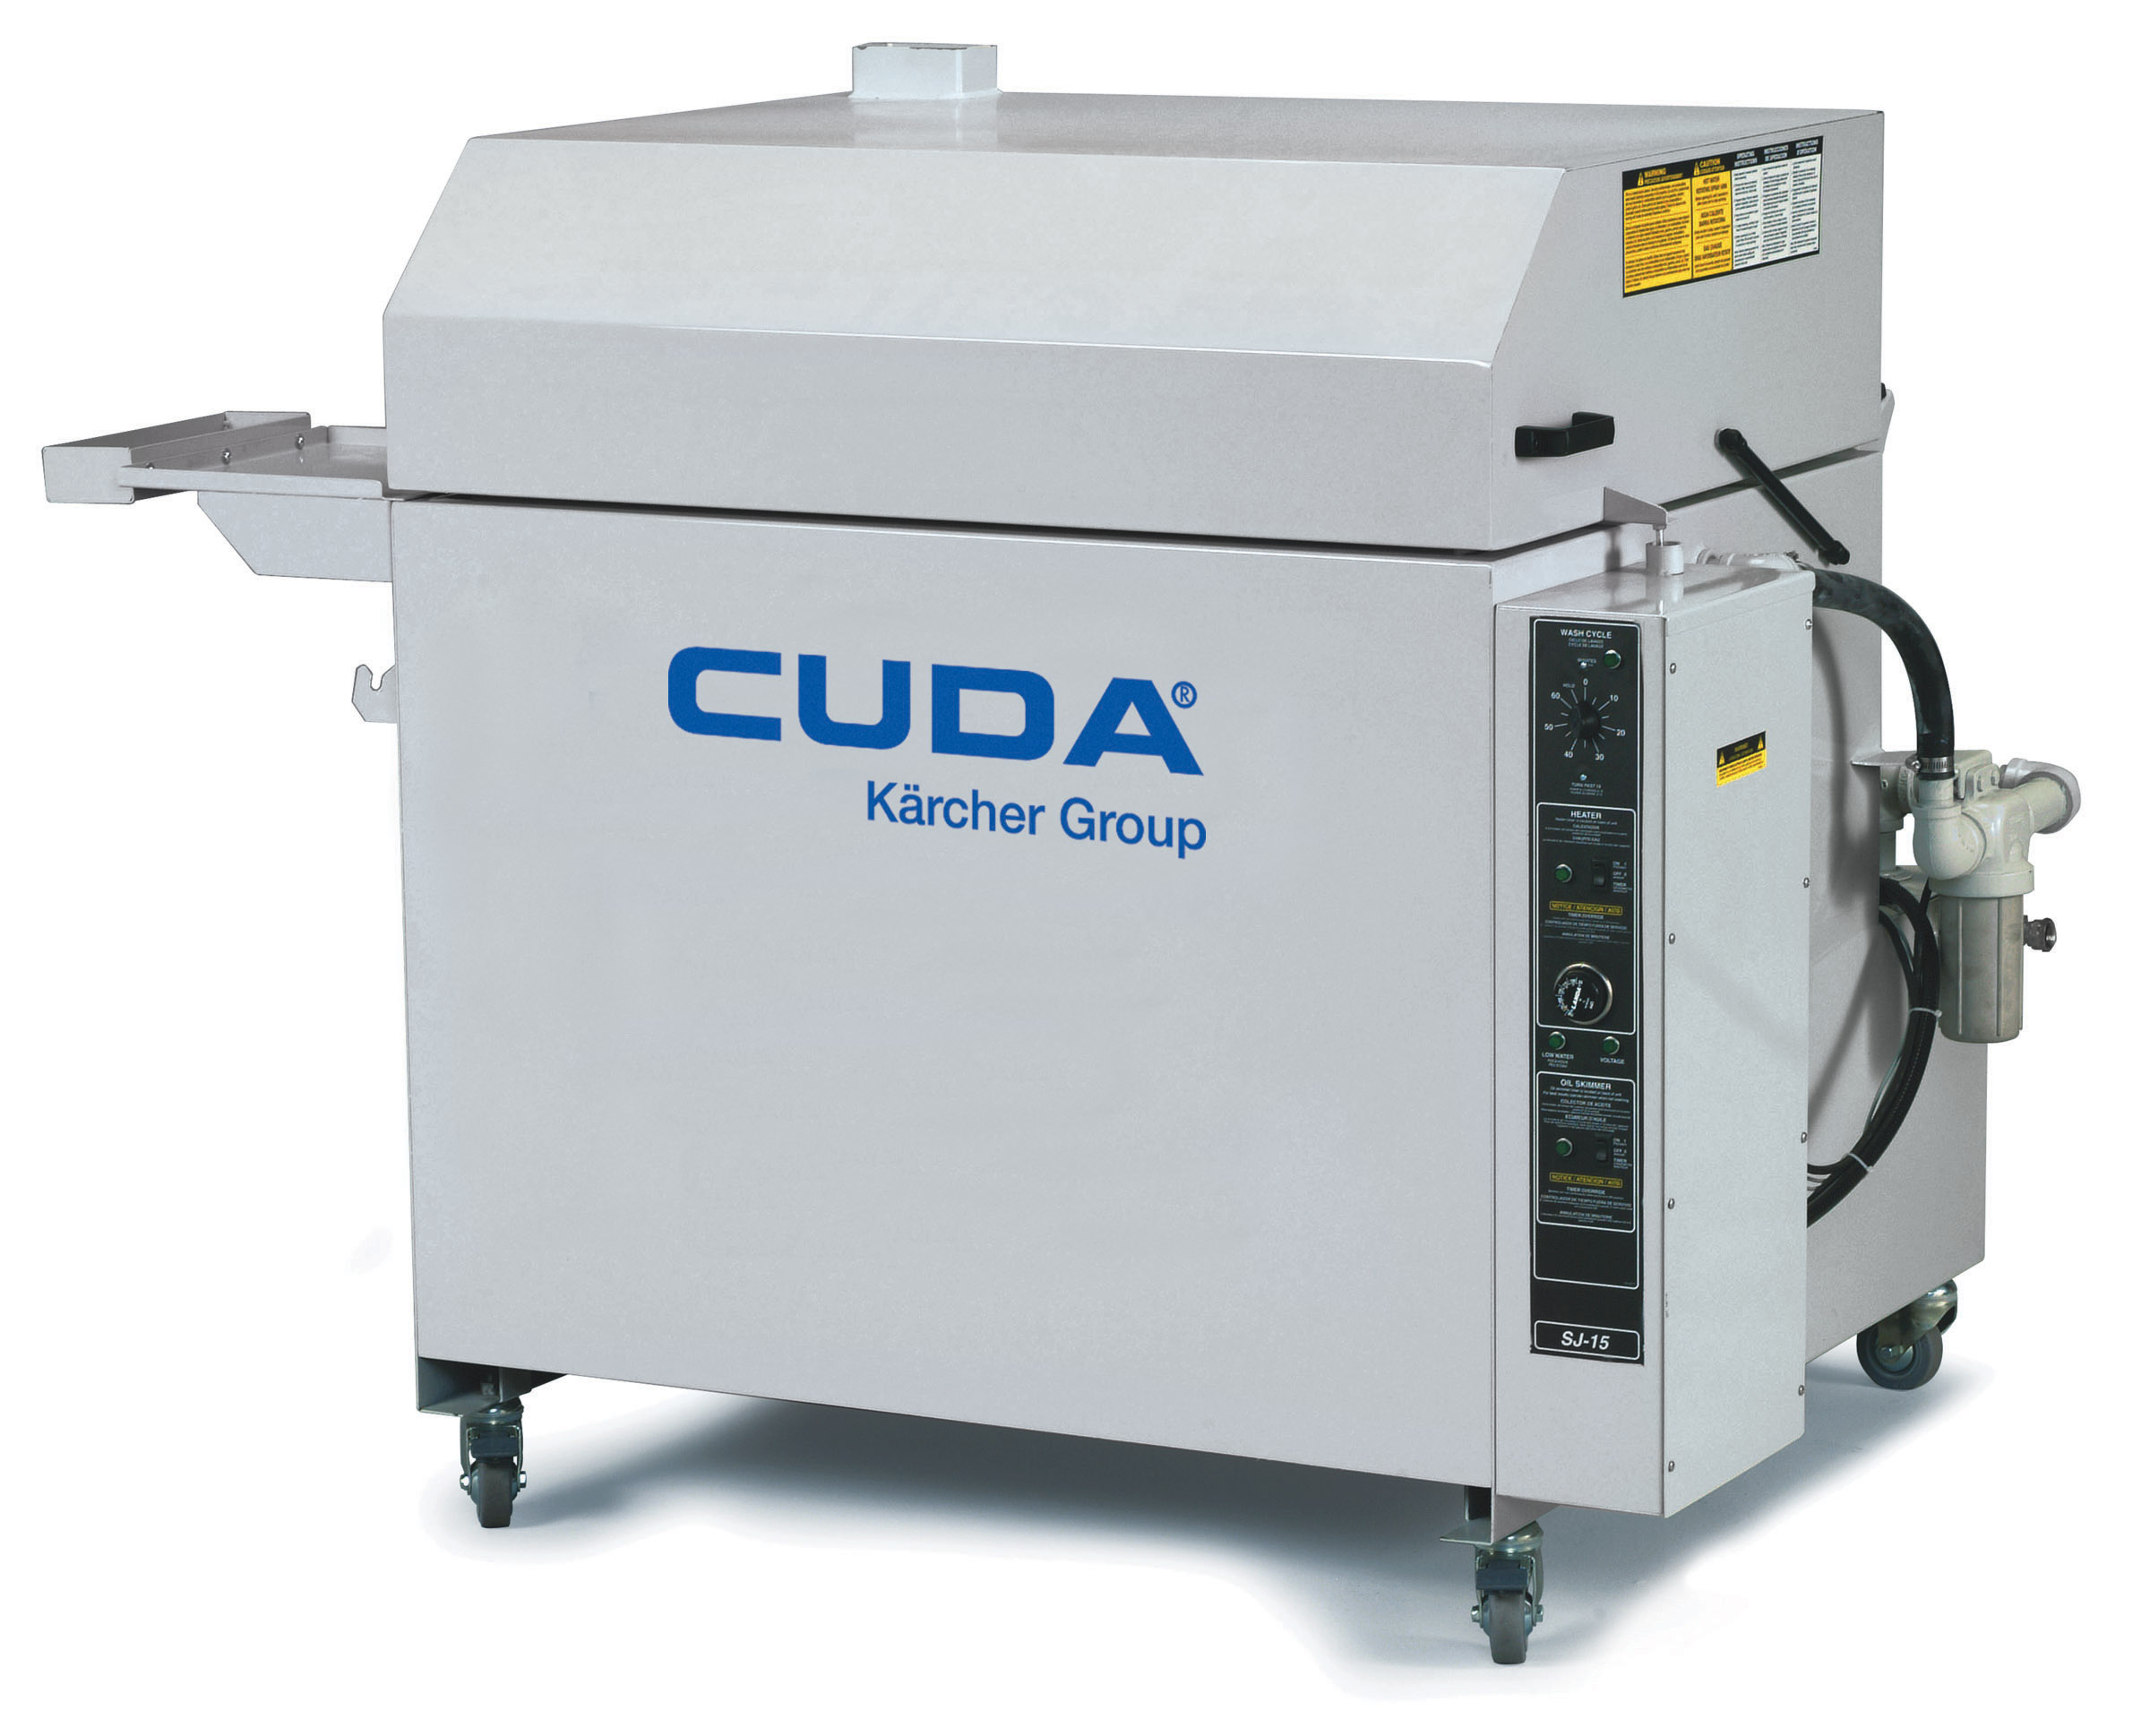 CUD Front-Load Product Sheet